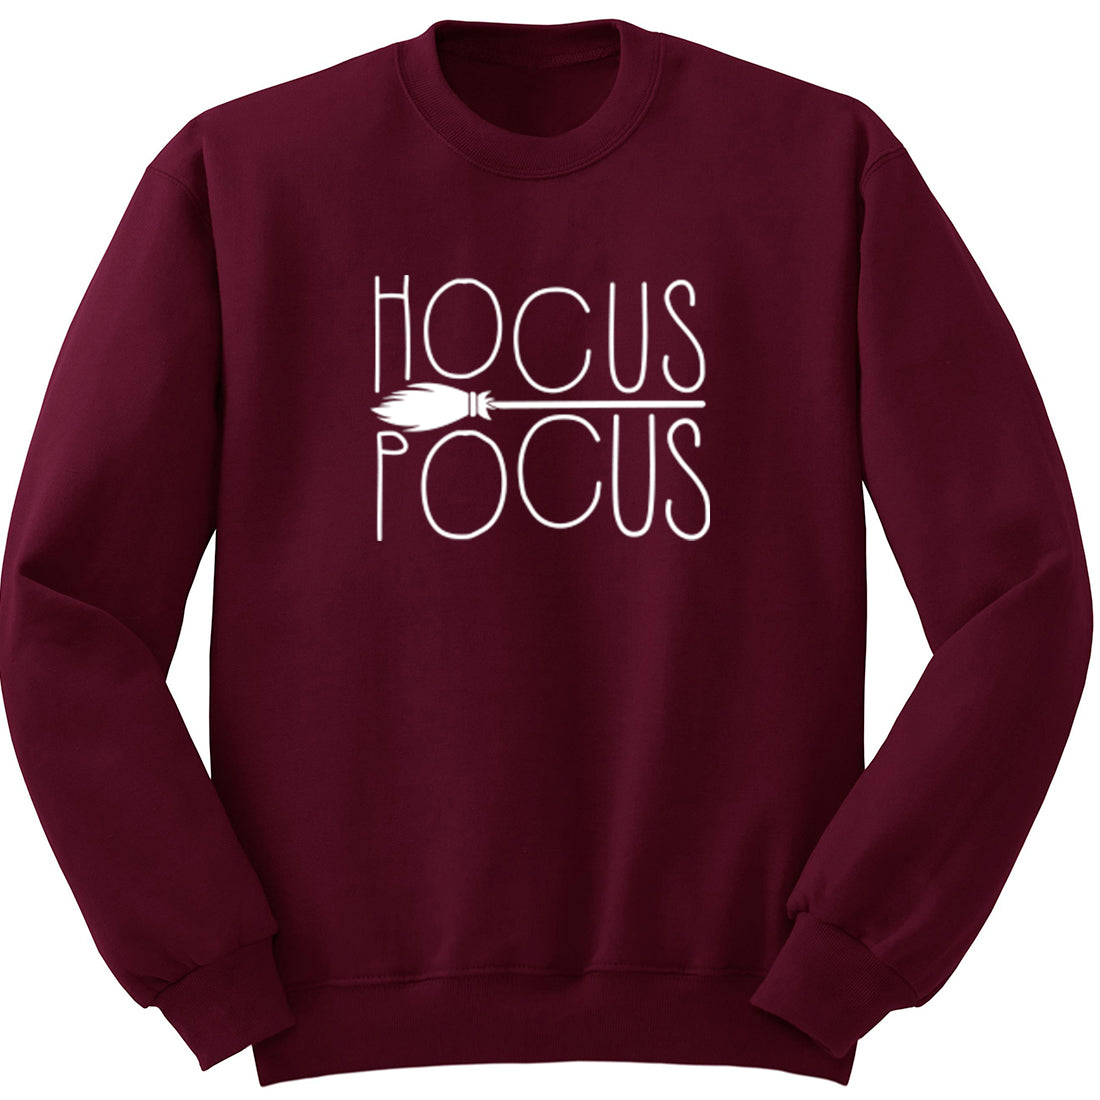 Hocus Pocus Unisex Jumper K1864 - Illustrated Identity Ltd.